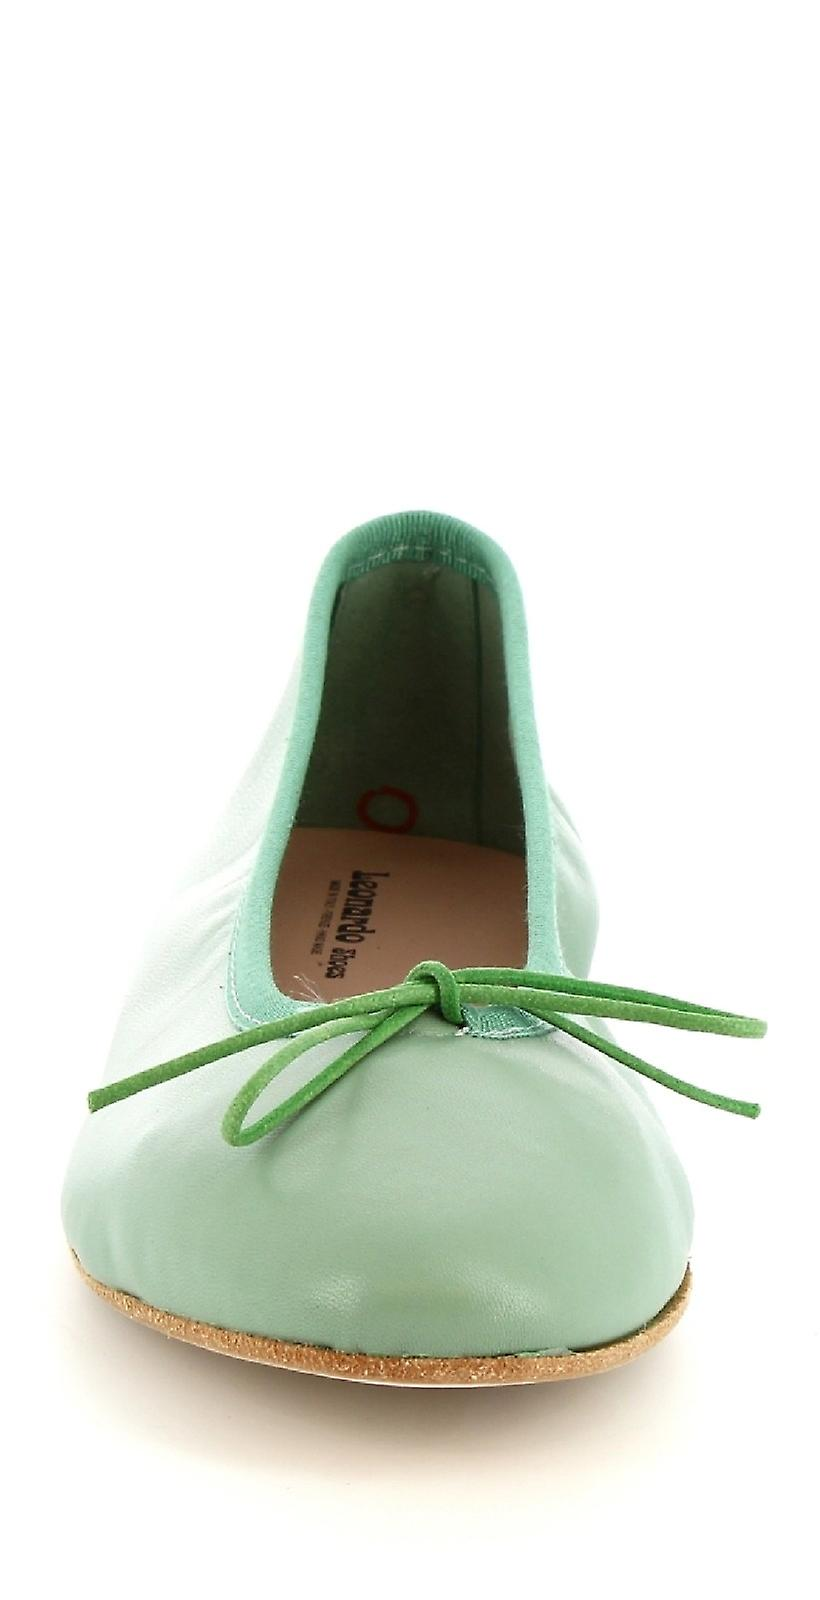 Leonardo Shoes 6087cuoionappaverde Women-apos;s Green Leather Flats